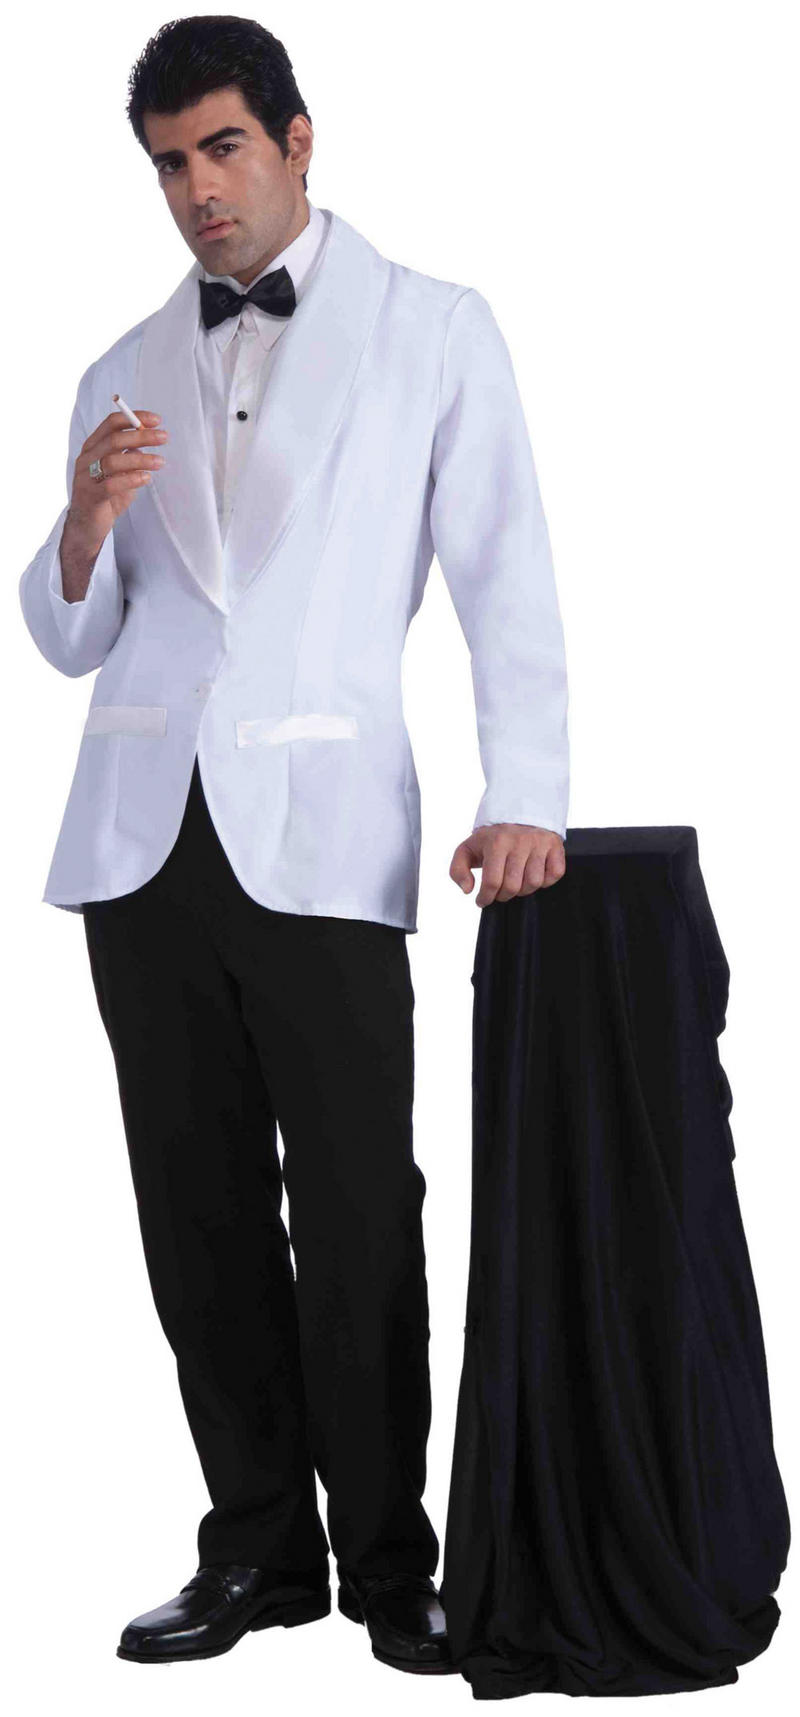 Mens Formal White Jacket Fancy Dress Costume James Bond Gangster Outfit New